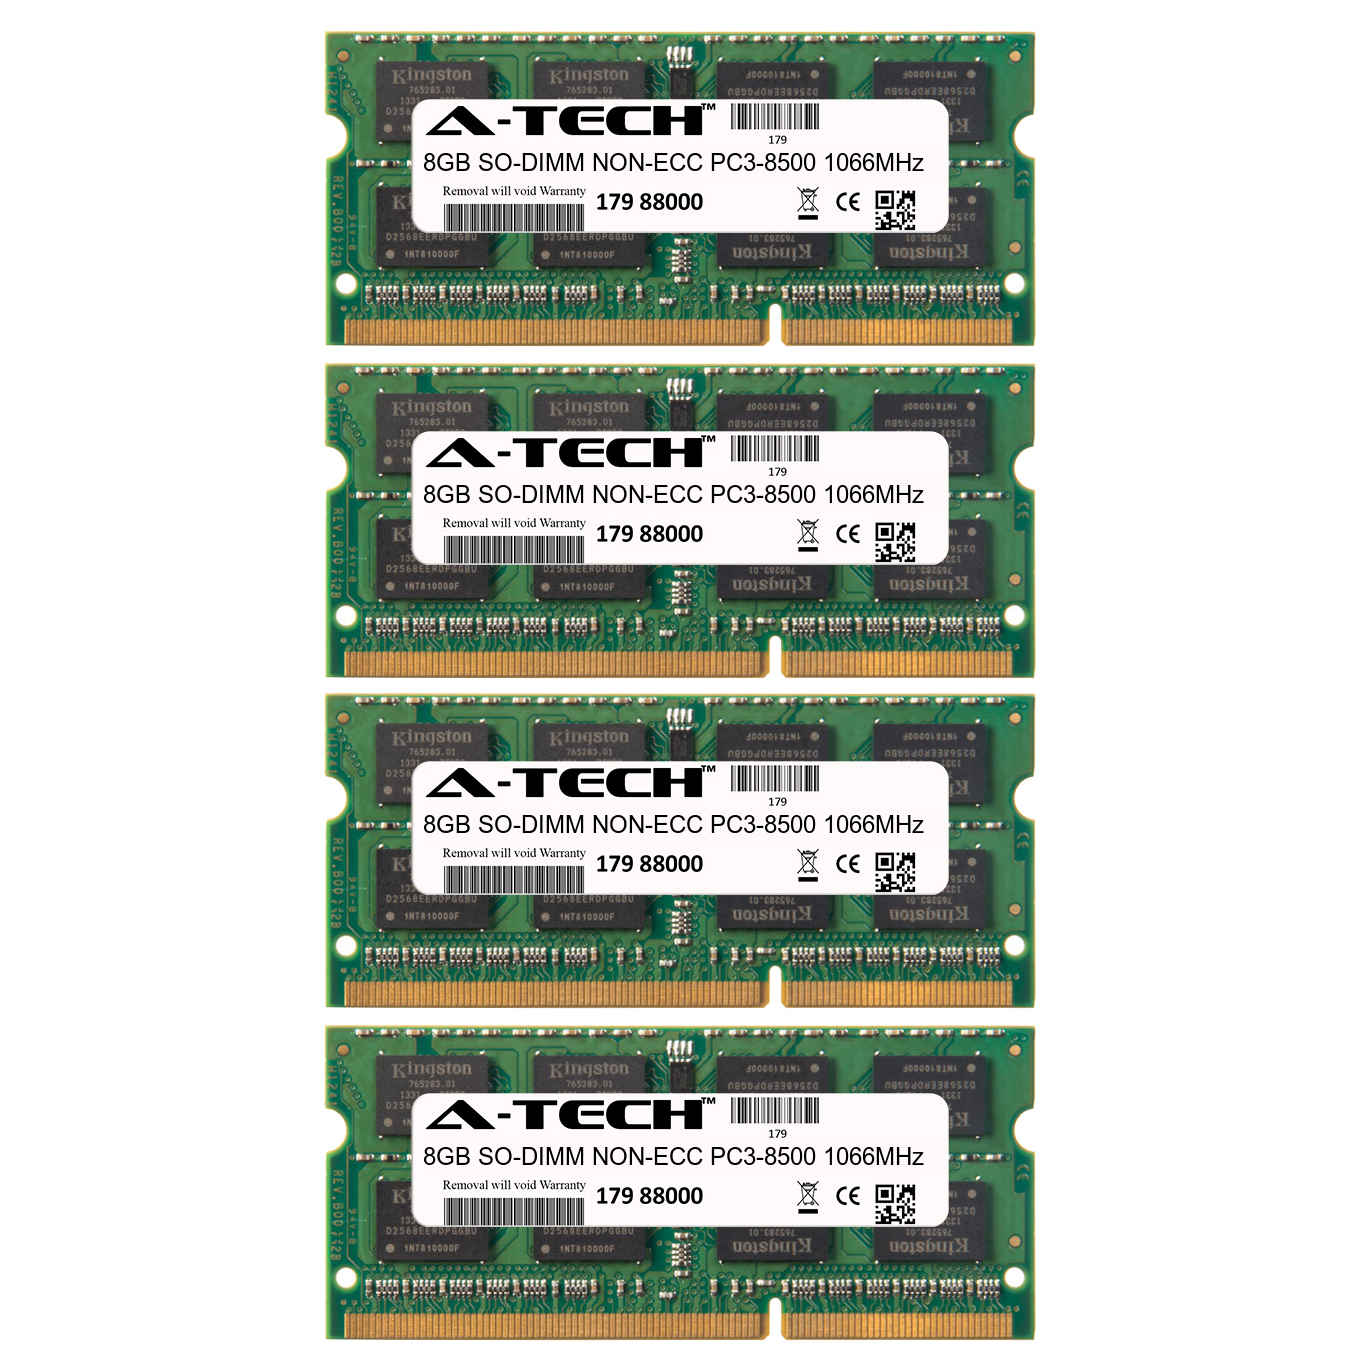 32GB Kit 4x 8GB Modules PC3-8500 1066MHz NON-ECC DDR3 SO-DIMM Laptop 204-pin Memory Ram